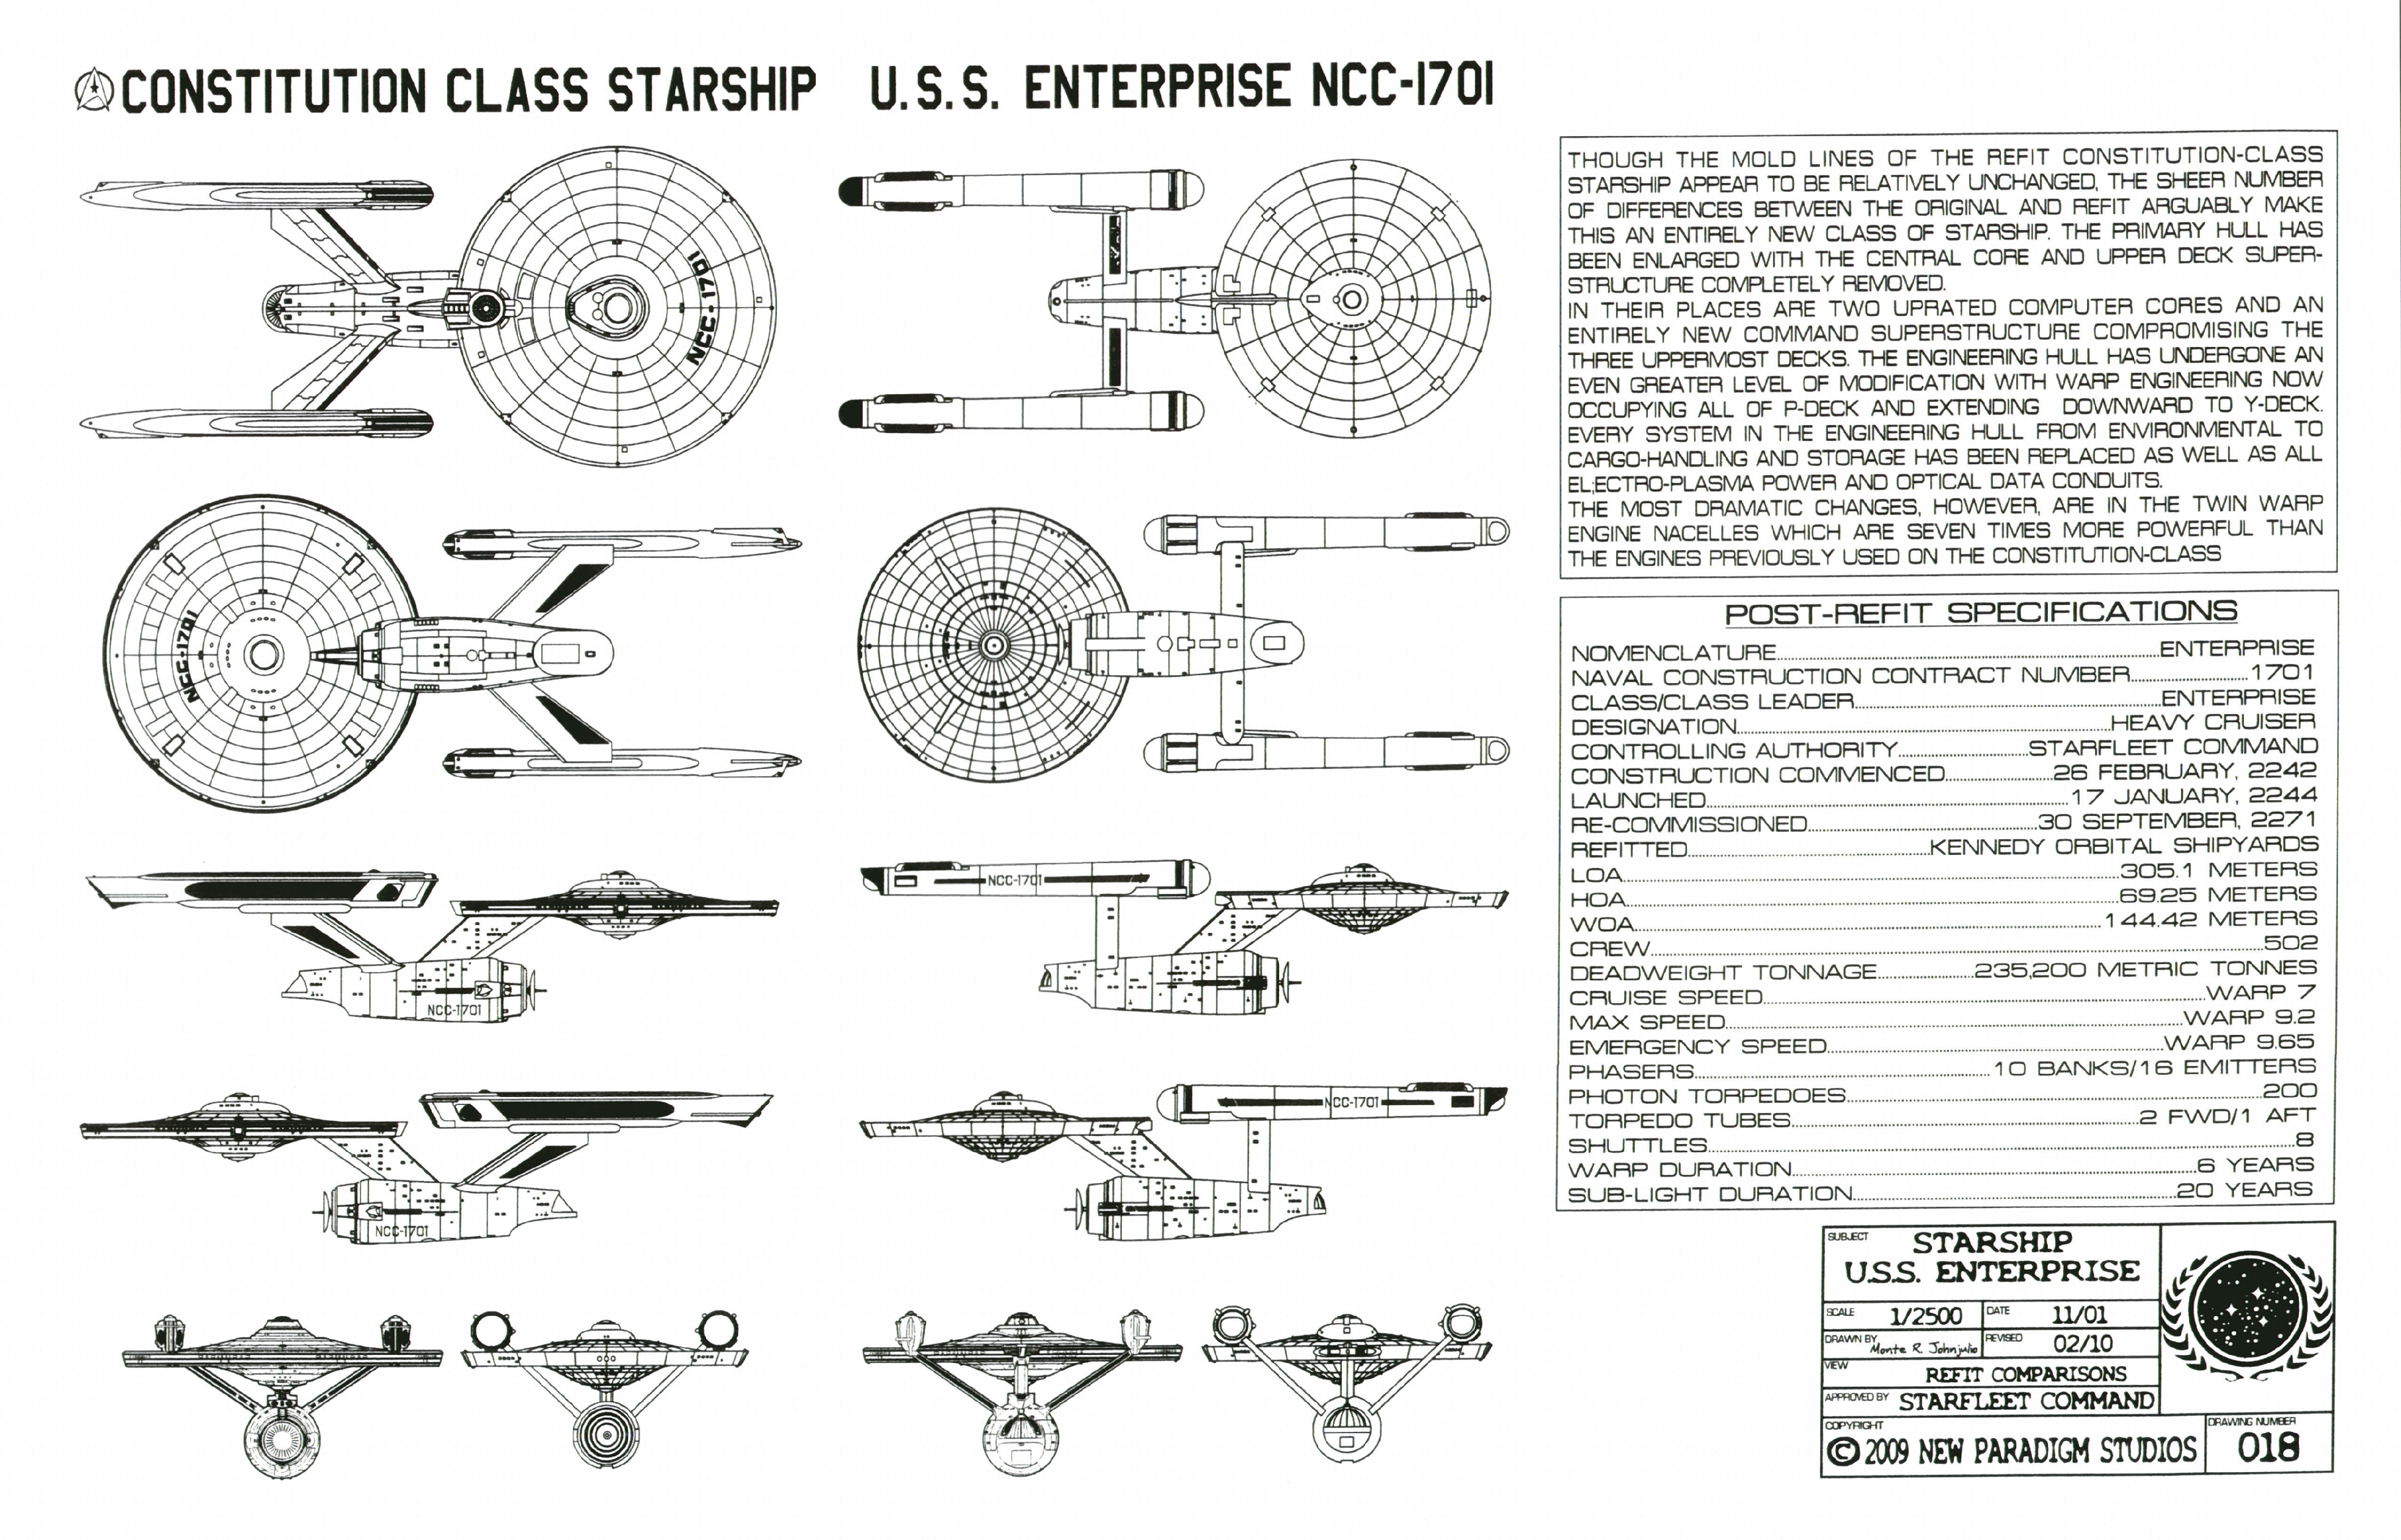 Awesome Constitution Class Starship Schematics Constitution Class Starship Schematic  Mug Mugs By Ufp Store